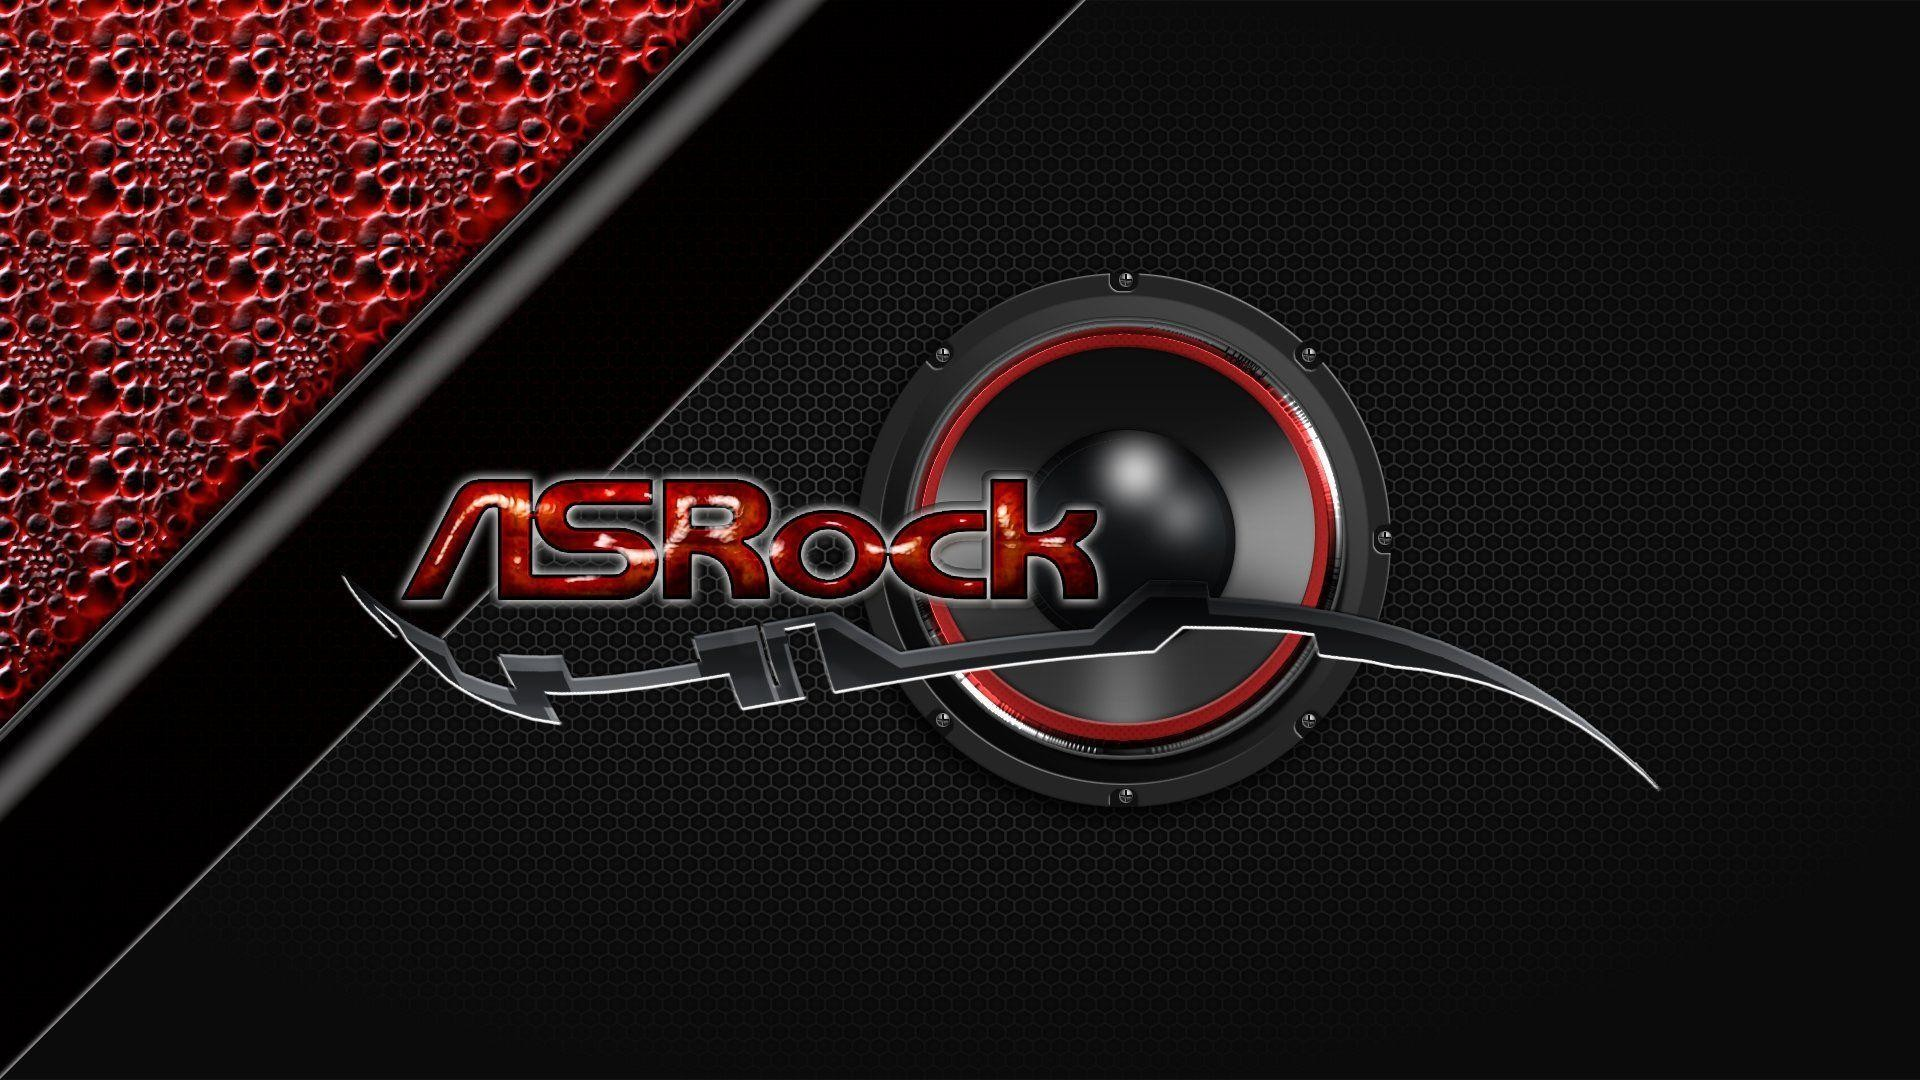 1920x1080 asrock wallpapers | WallpaperUP